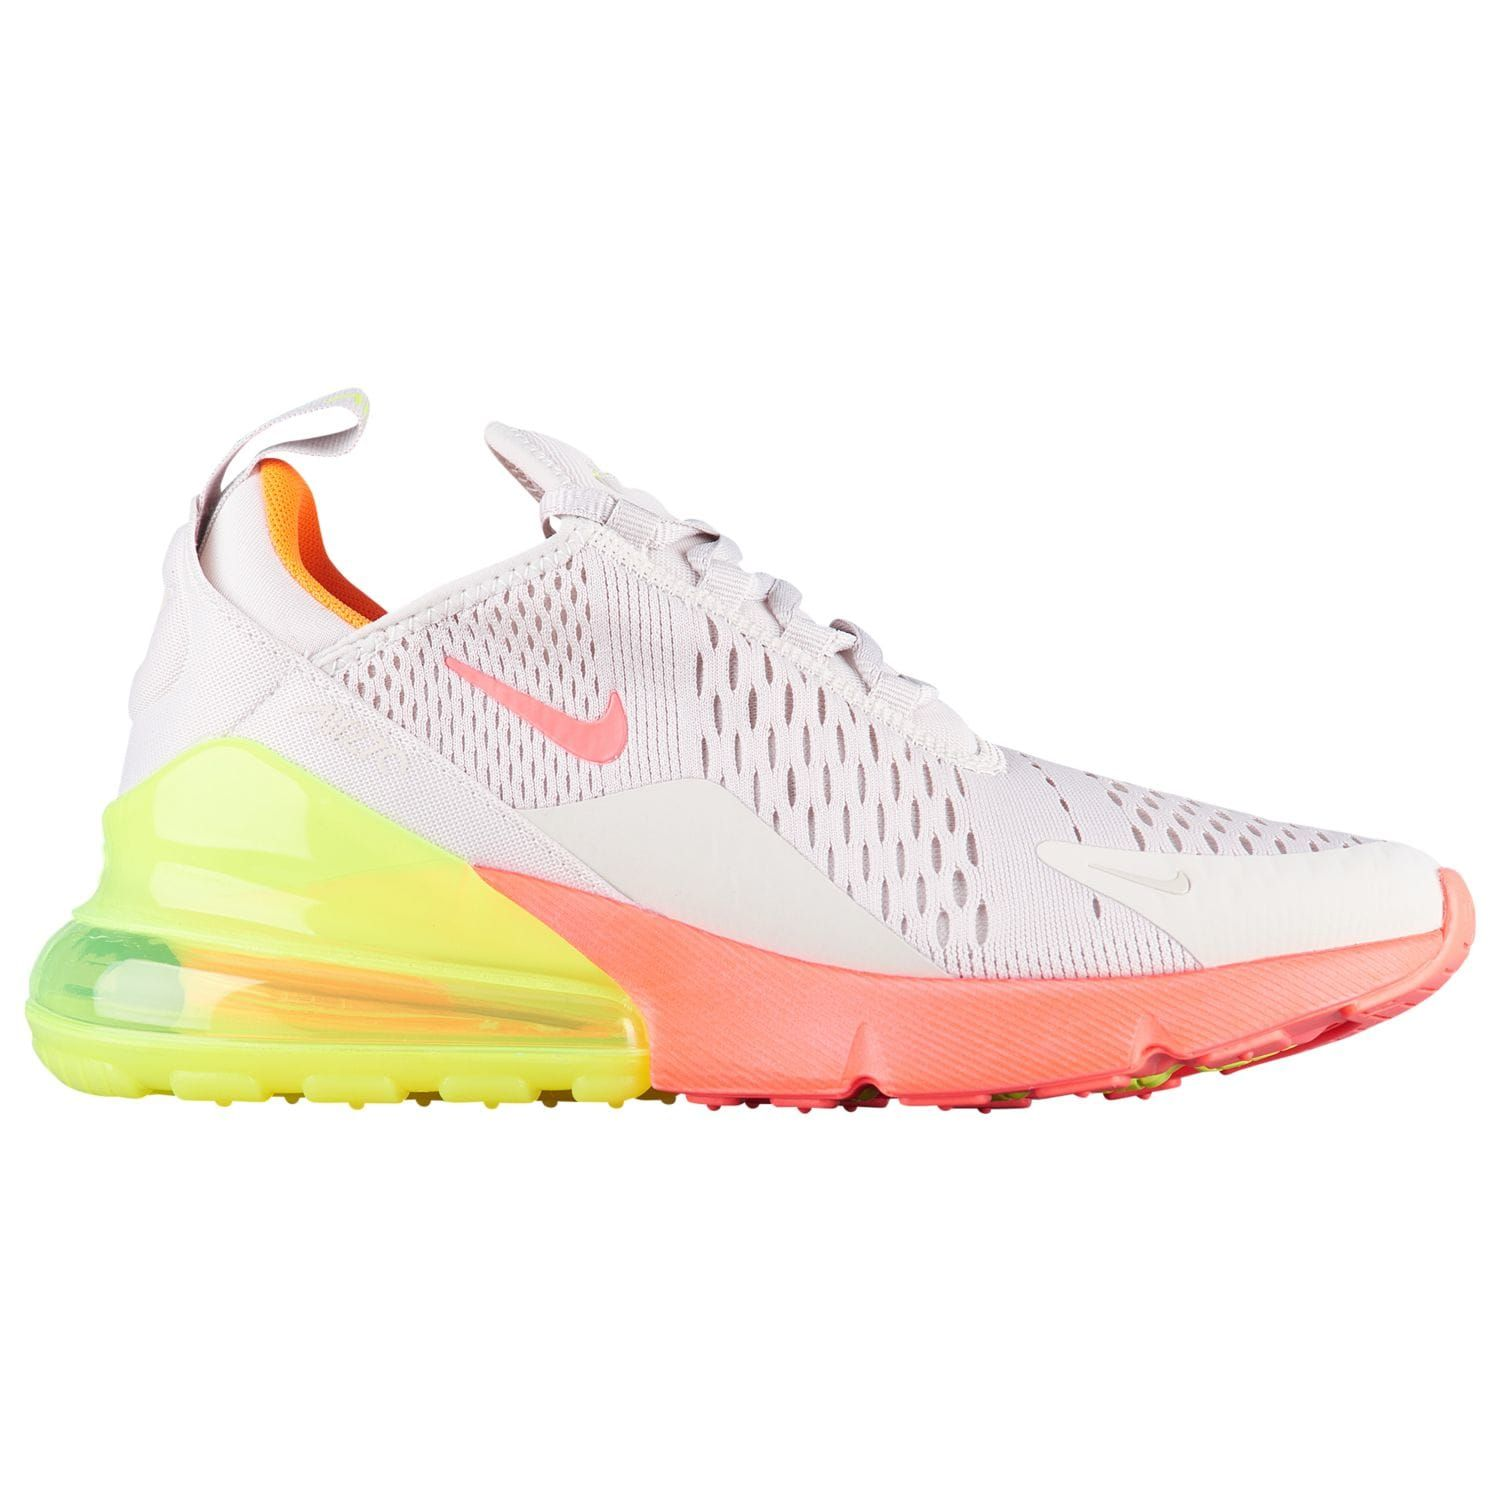 dd69ba0236 Nike Air Max 270 - Women's - Running - Shoes - Desert Sand/Hot  Punch/Volt/Total Orange